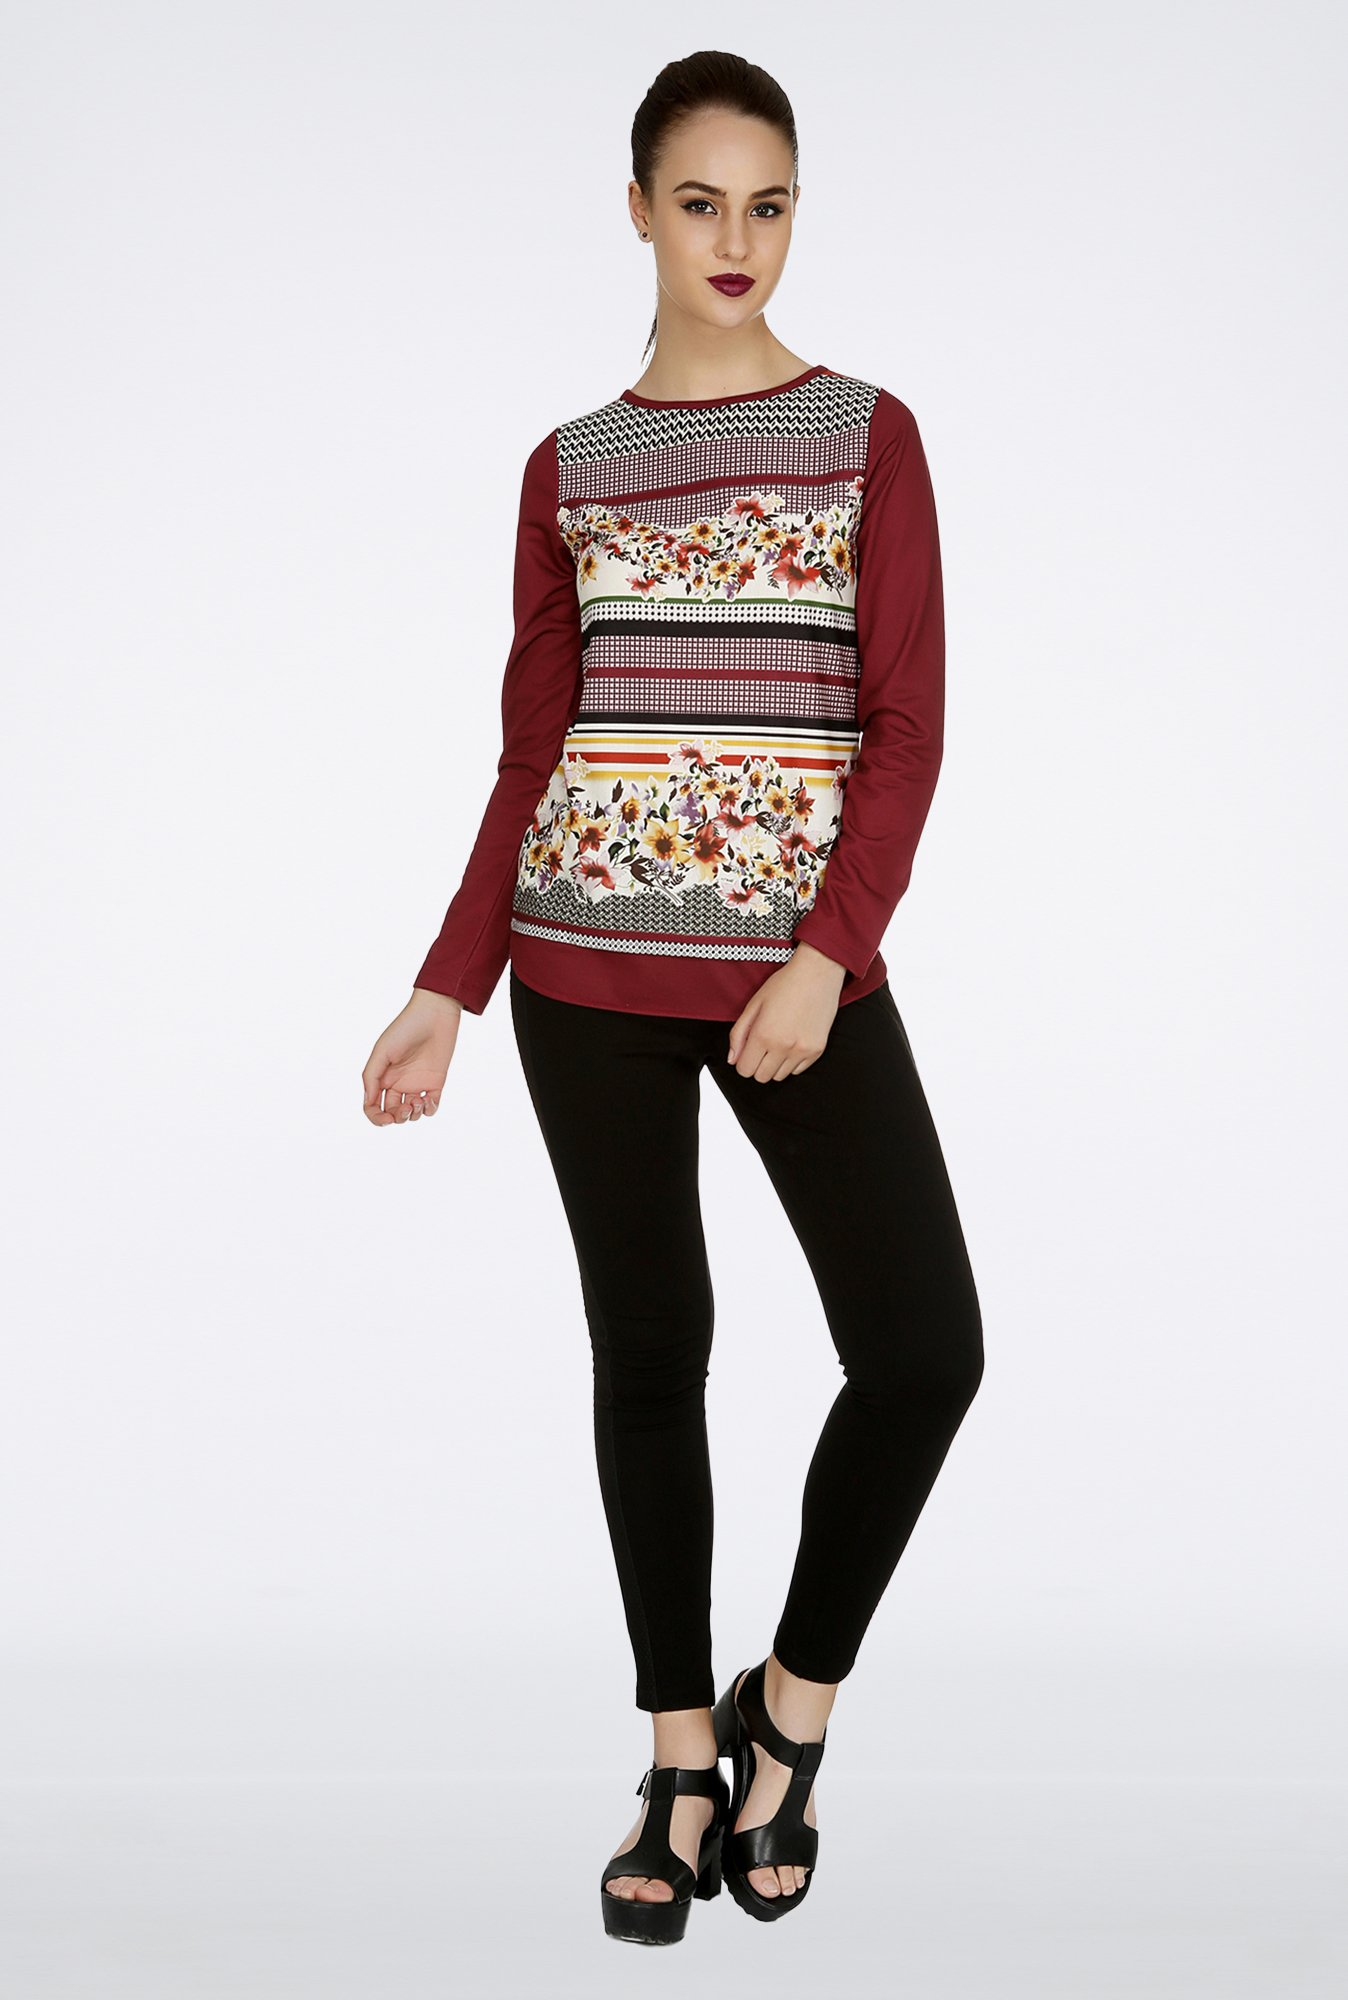 109 F Maroon Printed Top